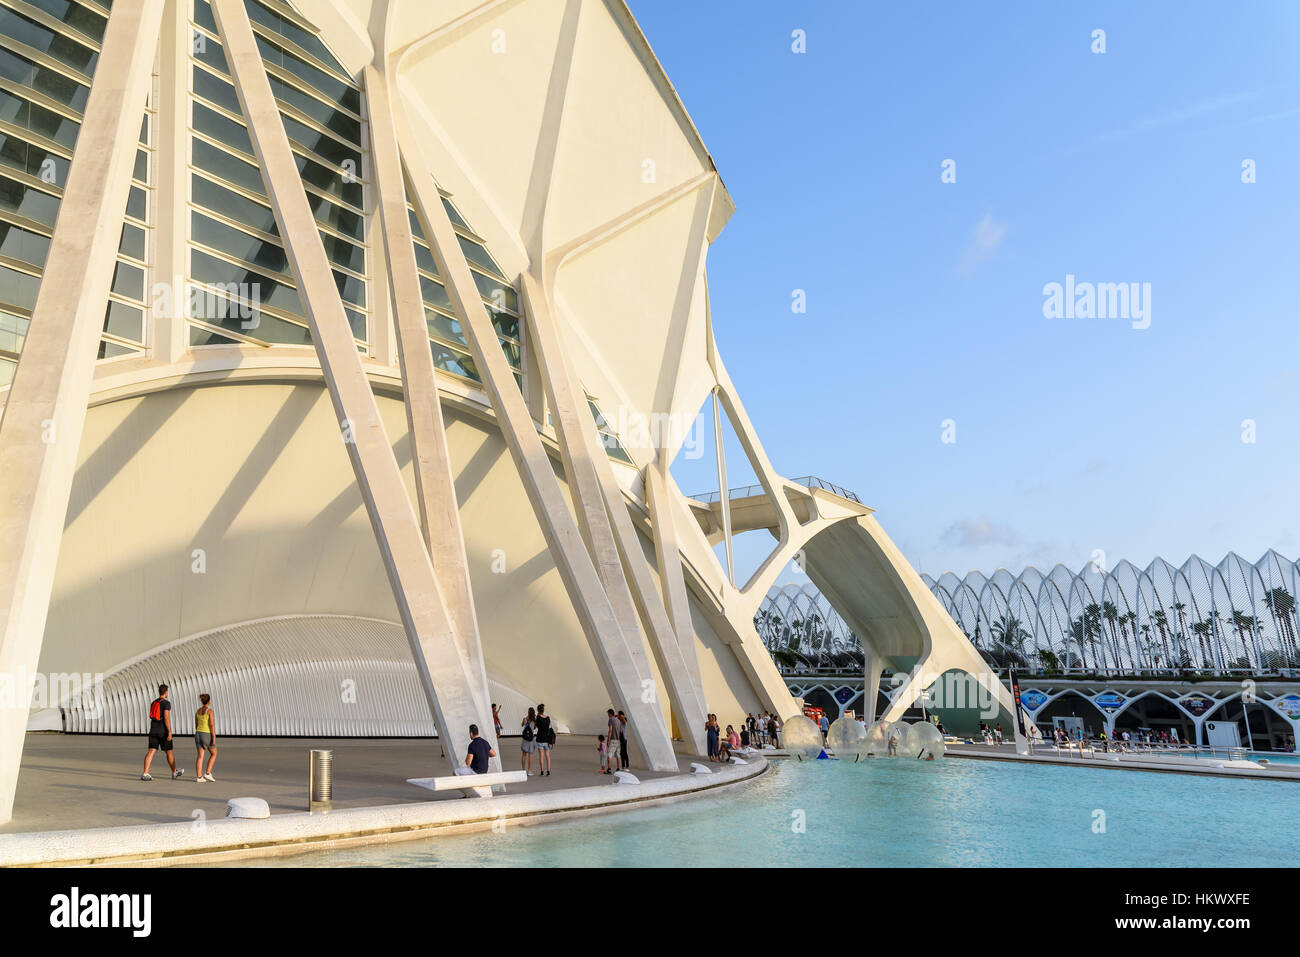 Prince Philip Science Museum of City of Arts and Sciences is an entertainment based cultural and architectural complex - Stock Image